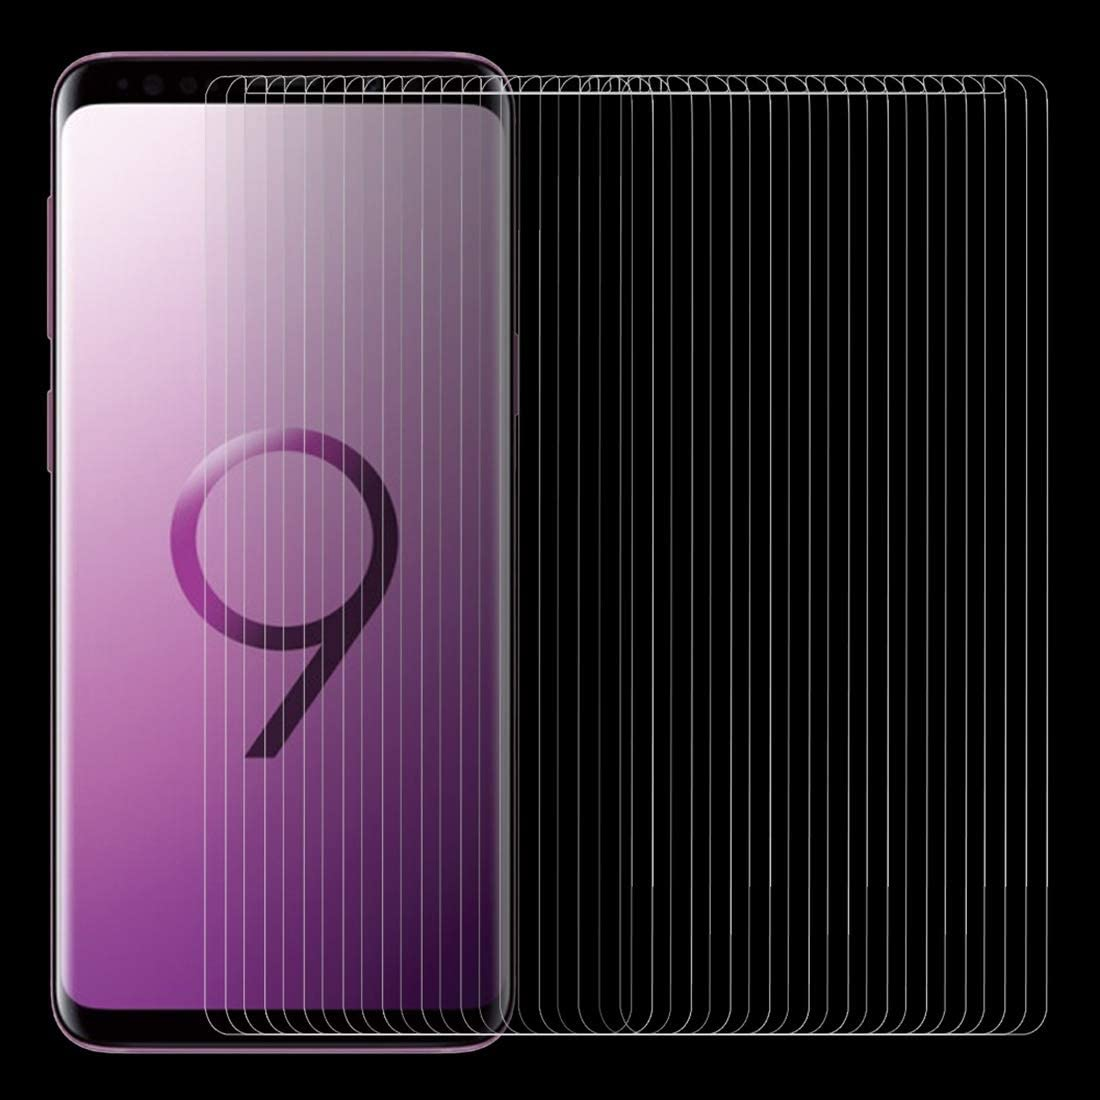 HUFAN 100 PCS for Galaxy S9 0.26mm 9H Surface Hardness 2.5D Curved Edge Non-Full Screen Tempered Glass Front Screen Protector Phone Glass Film